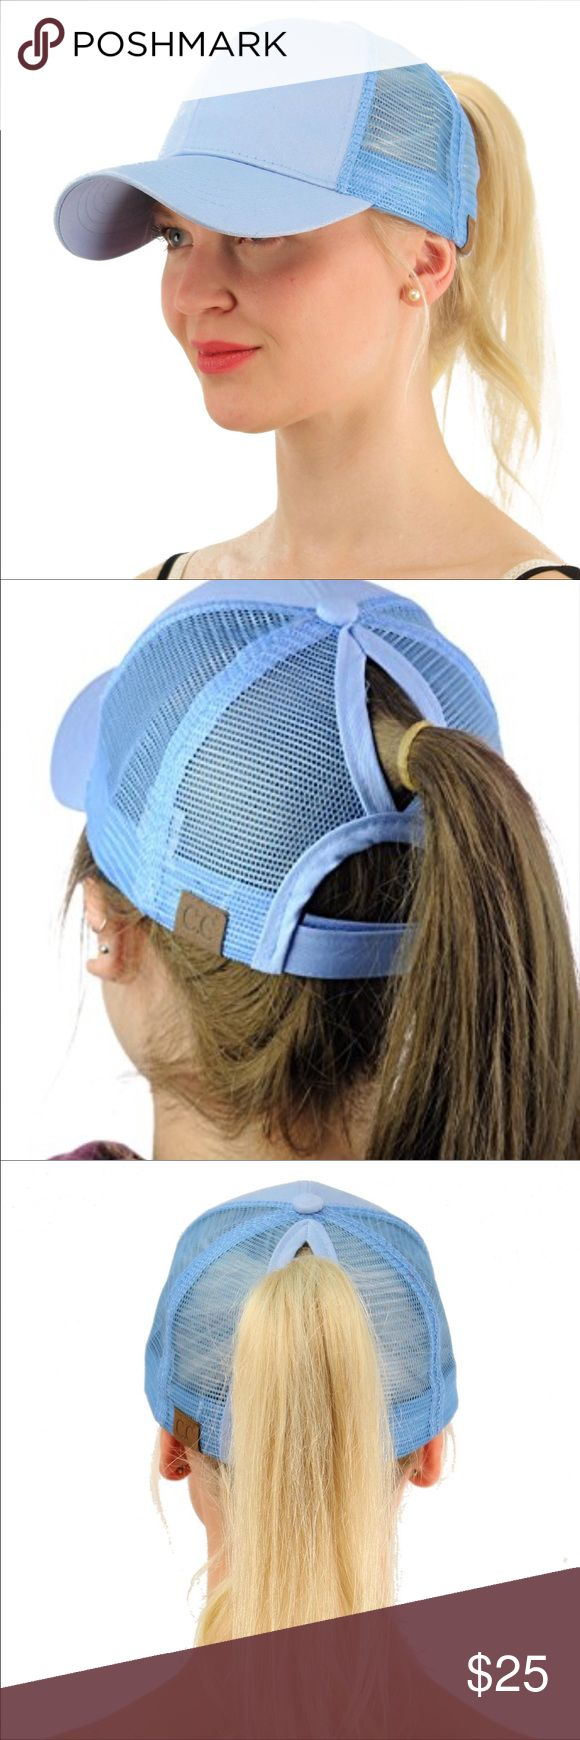 """🆕 Ponycap Messy High Bun Ponytail Mesh Cap One size fits most with adjustable hook and loop fastener. Ponytail slot 3"""" by 5"""". Perfect for pulling your messy bun or high ponytail through. Simply pull hair through slot and adjust to desired style. Even suitable for man buns! This listing is for blue . Boutique Accessories Hats"""